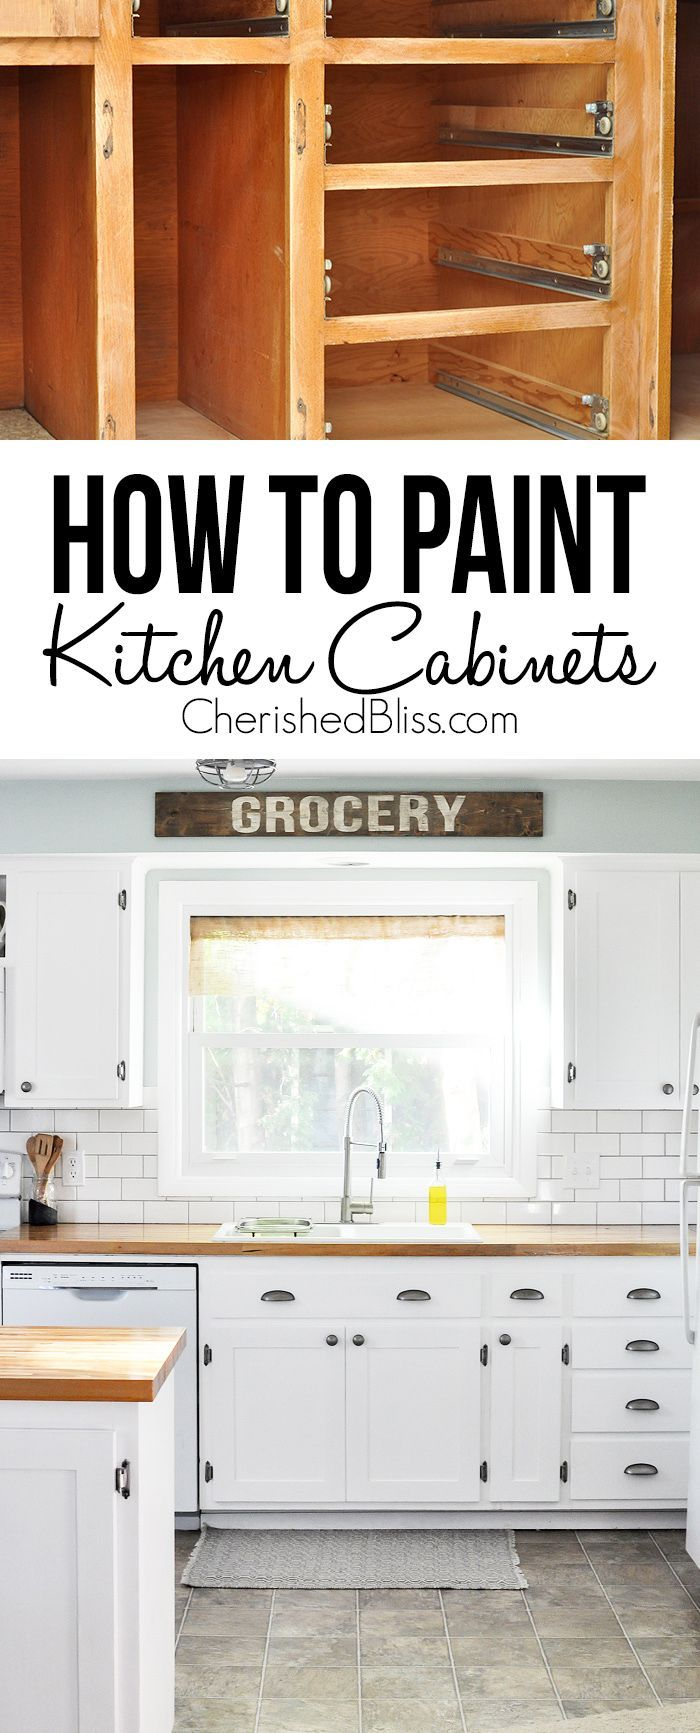 tips on how to paint kitchen cabinets rooms kitchen pantry rh pinterest com